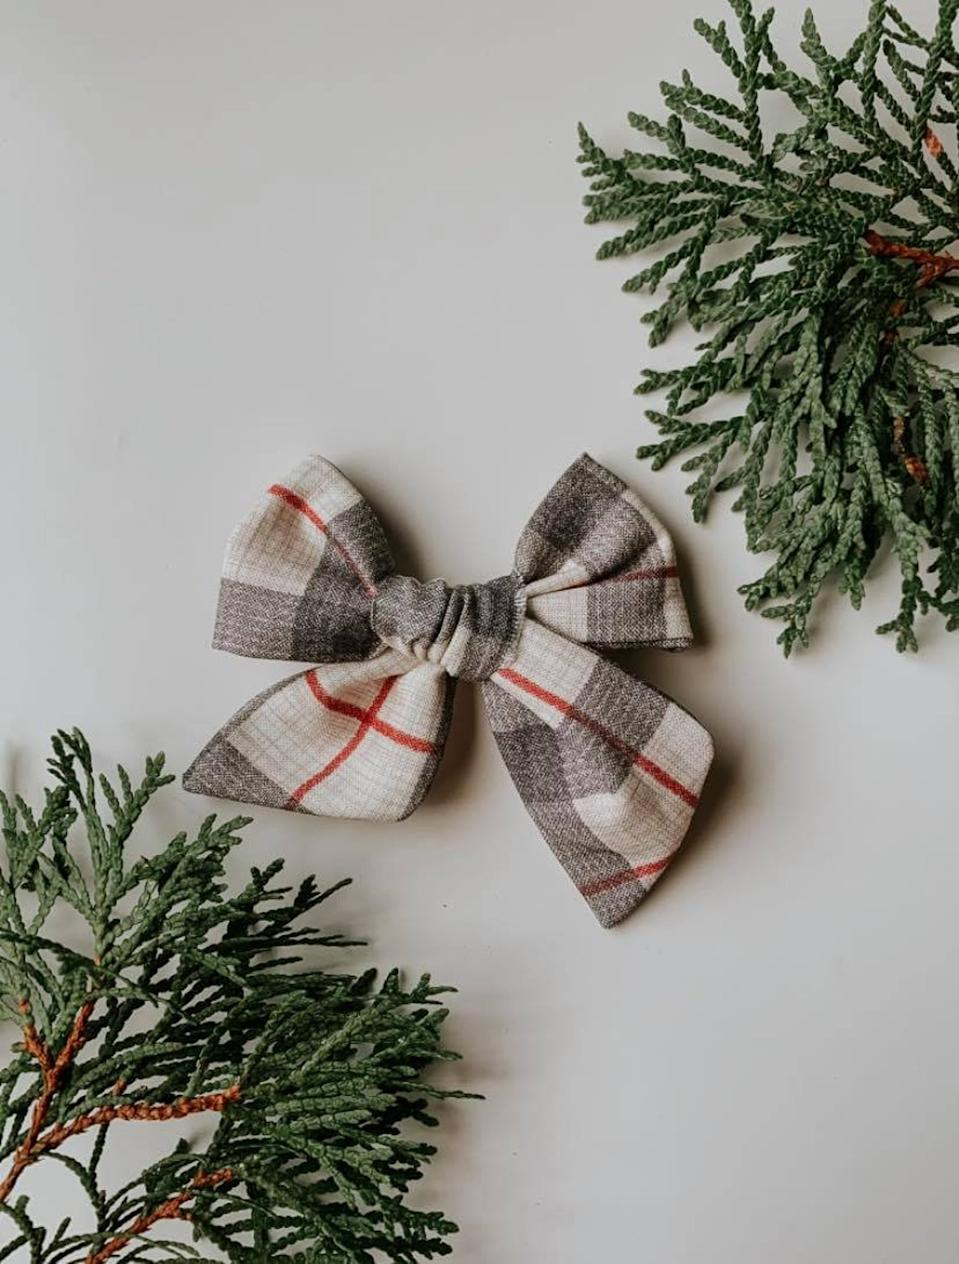 Sleigh Ride Bow by Wild Ivy Bows, from $3.50.